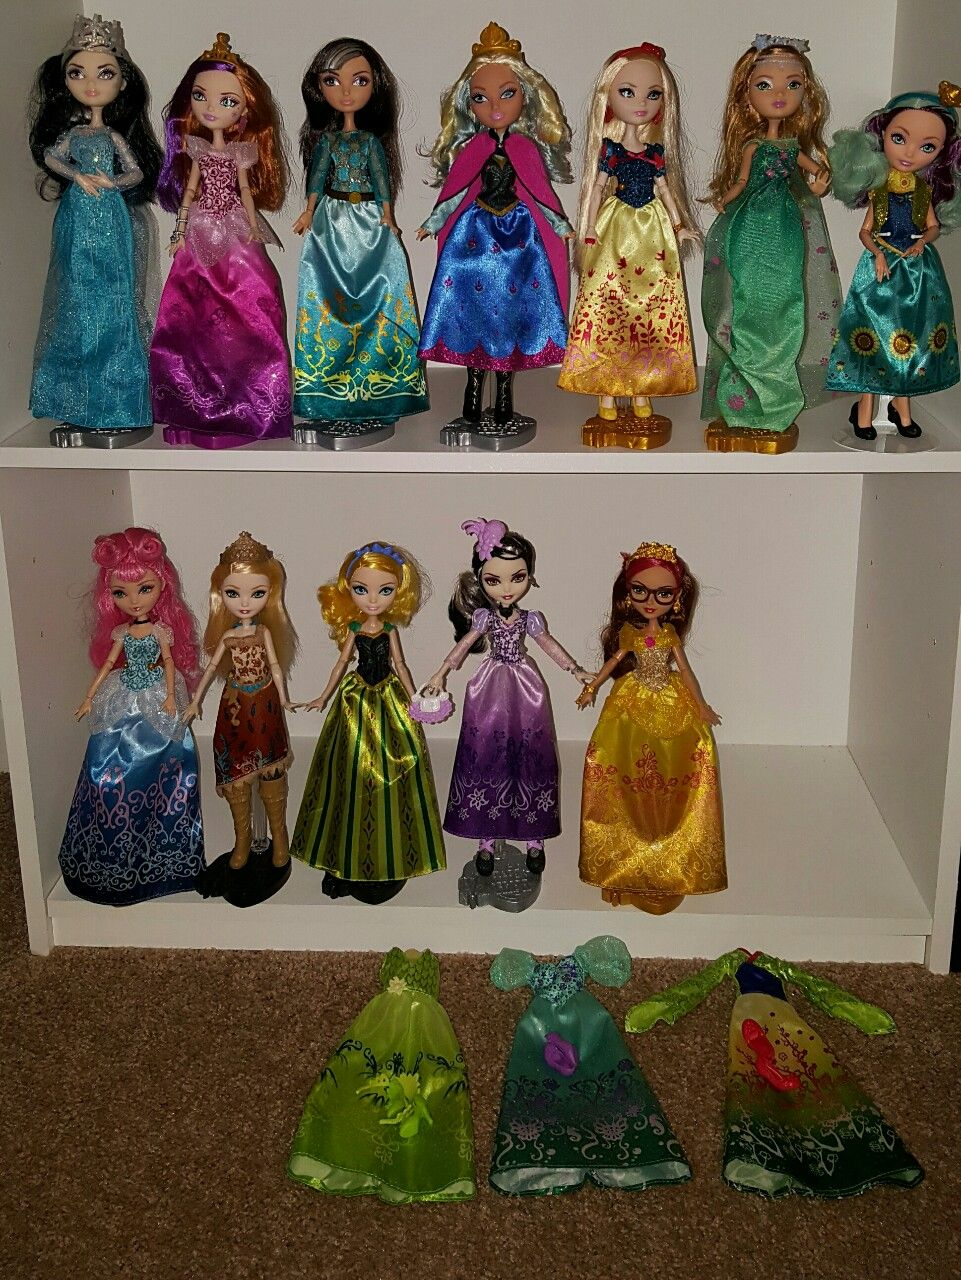 Dolls Farraha Goodfairy Extremely Rare Ever After High Discontinued Collectable Sufficient Supply